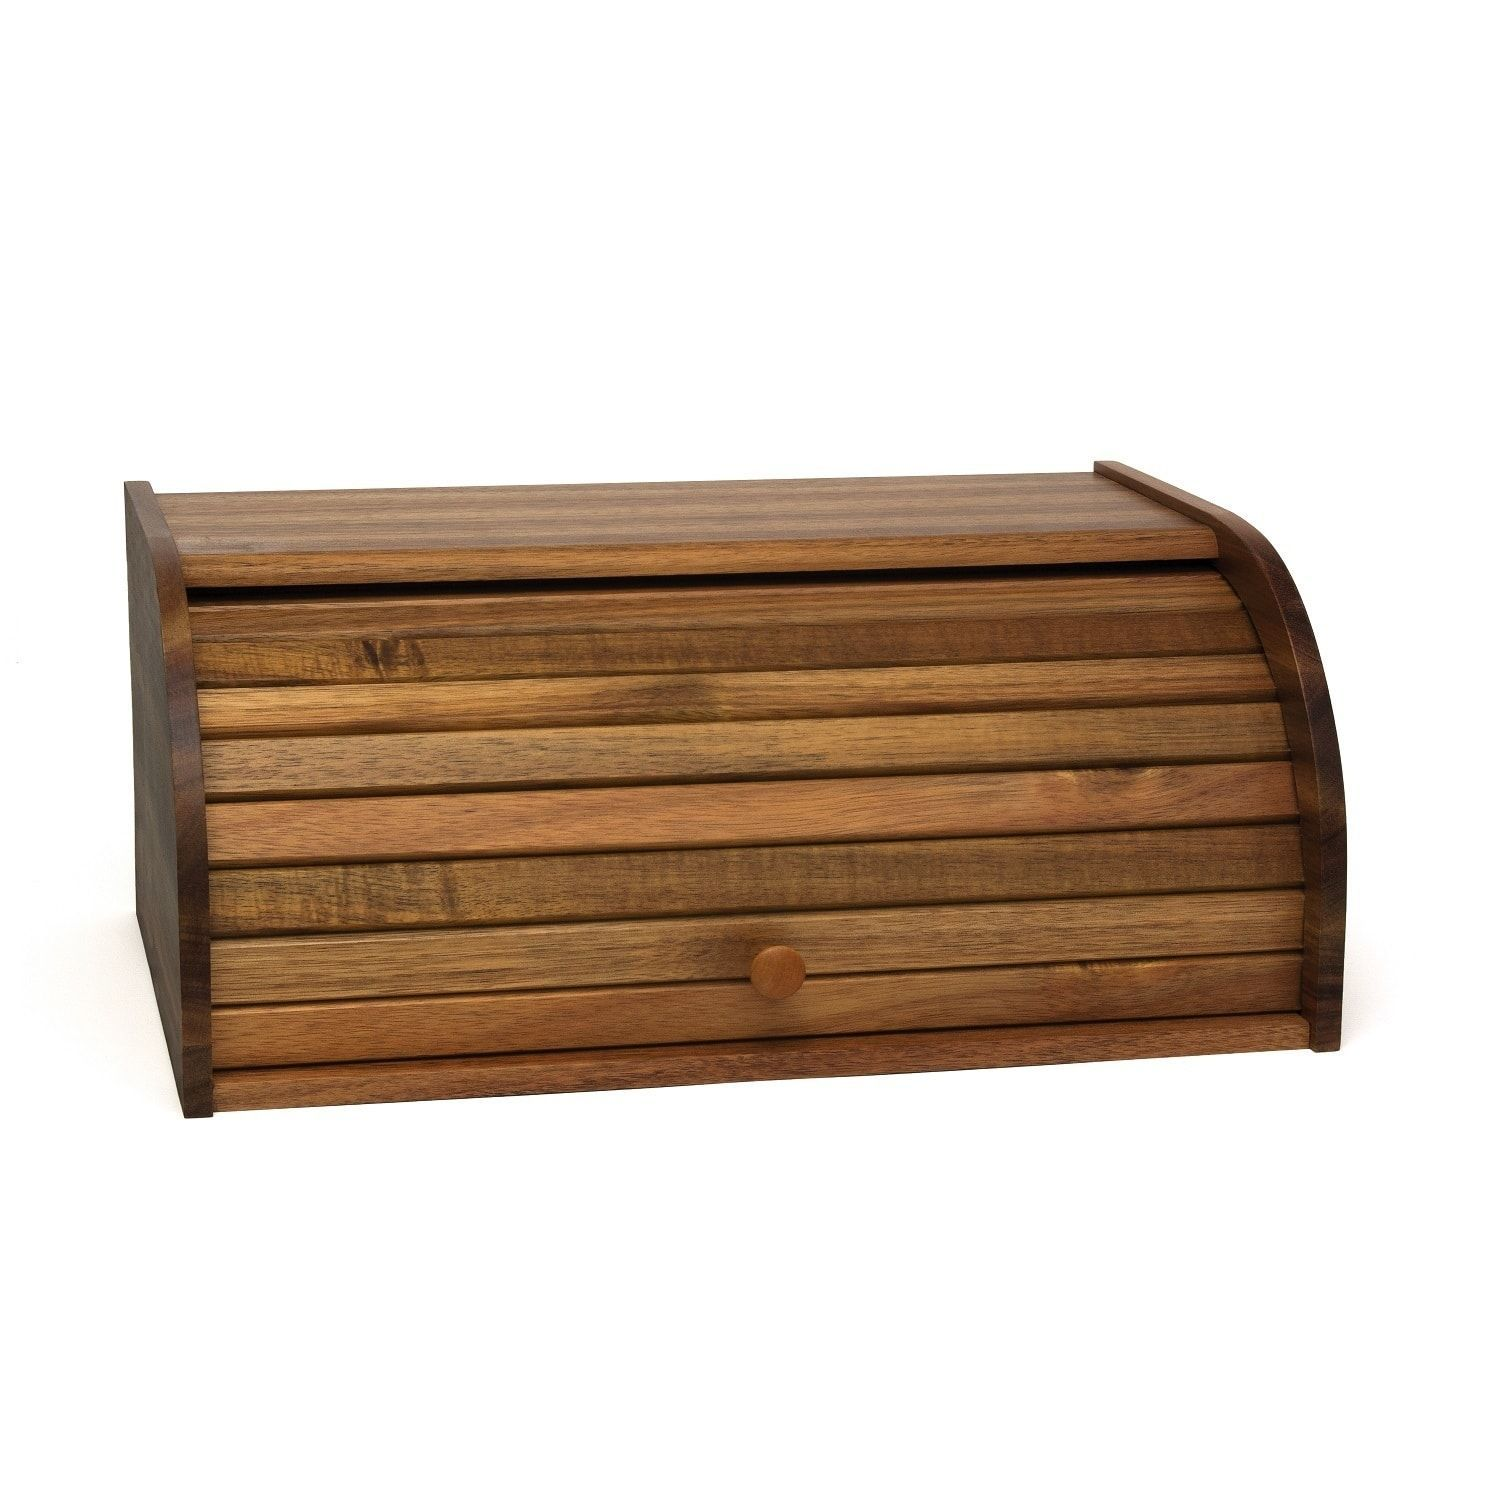 Bread Box Target Lipper Acacia Rolltop Bread Box  Bread Boxes Acacia And Free Shipping